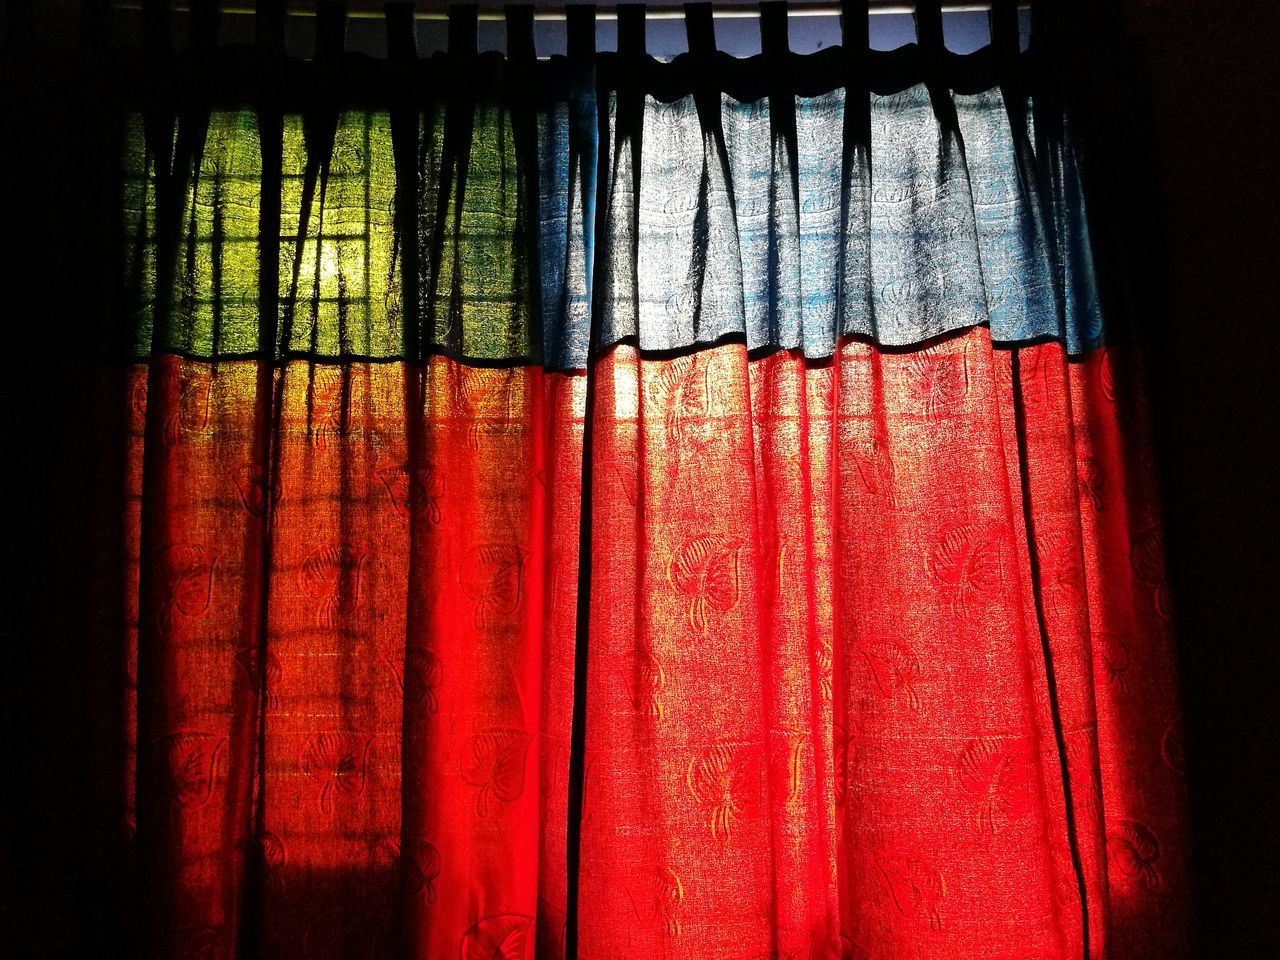 Curtains Windows_aroundtheworld Window Afternoon Sunnyday🌞 Sun Rays Behind The Curtains Colorful Beautiful View In My Room PhonePhotography Fine Art Photography Showcase July